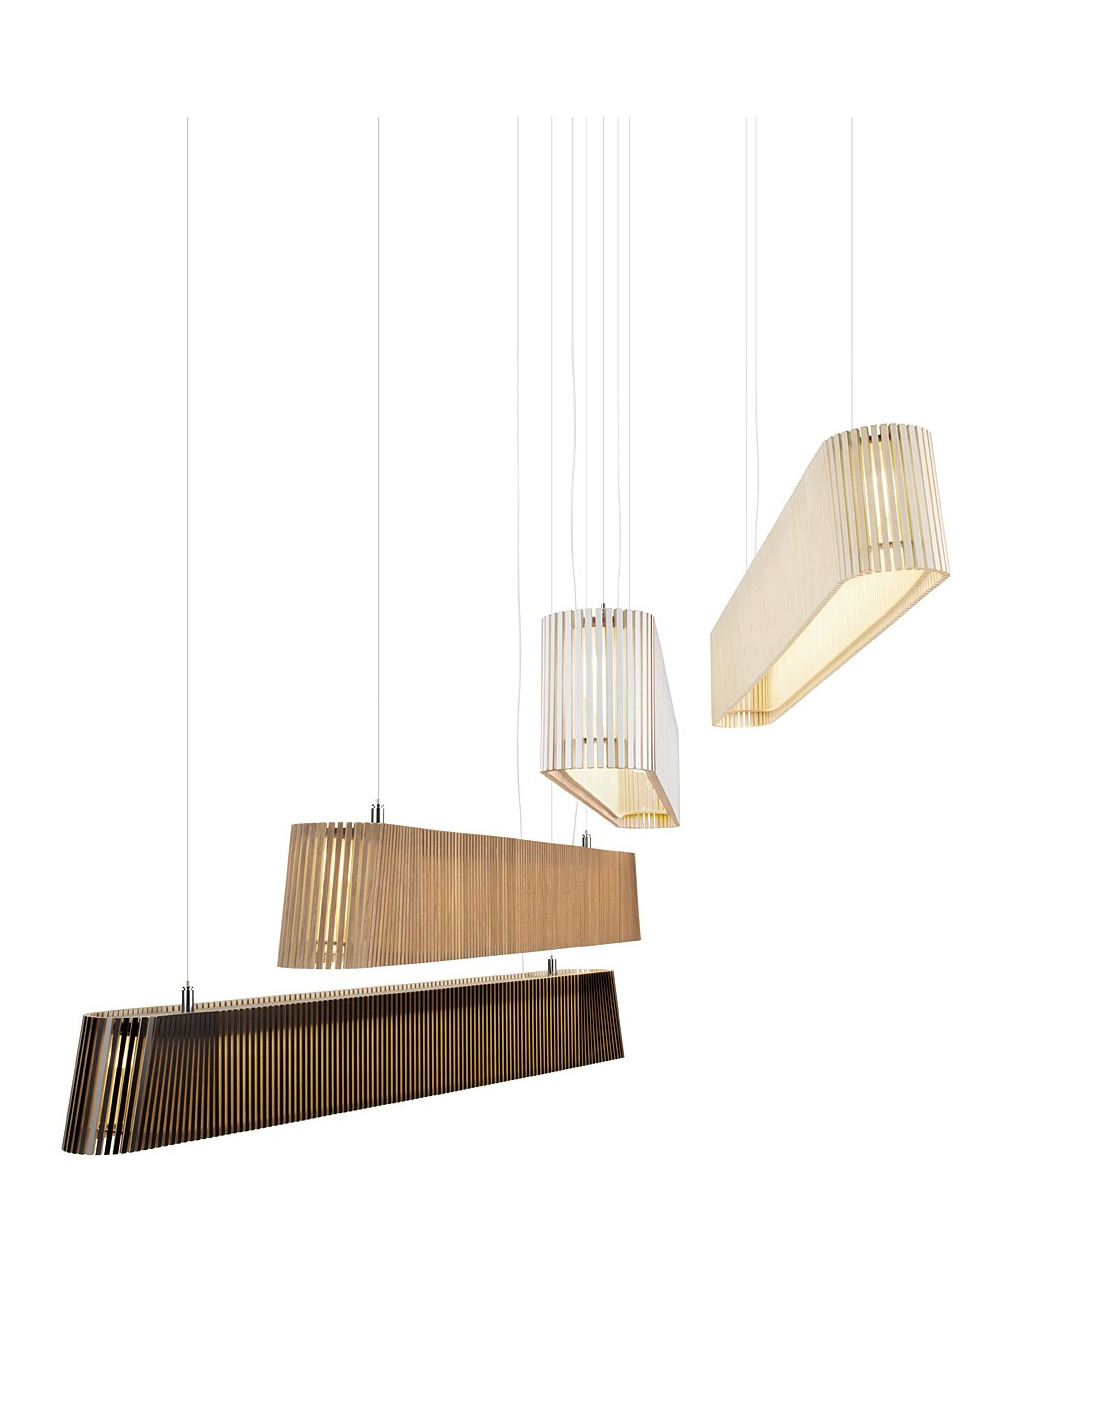 suspension led au design scandinave owalo 7000 en bois naturel otoko. Black Bedroom Furniture Sets. Home Design Ideas